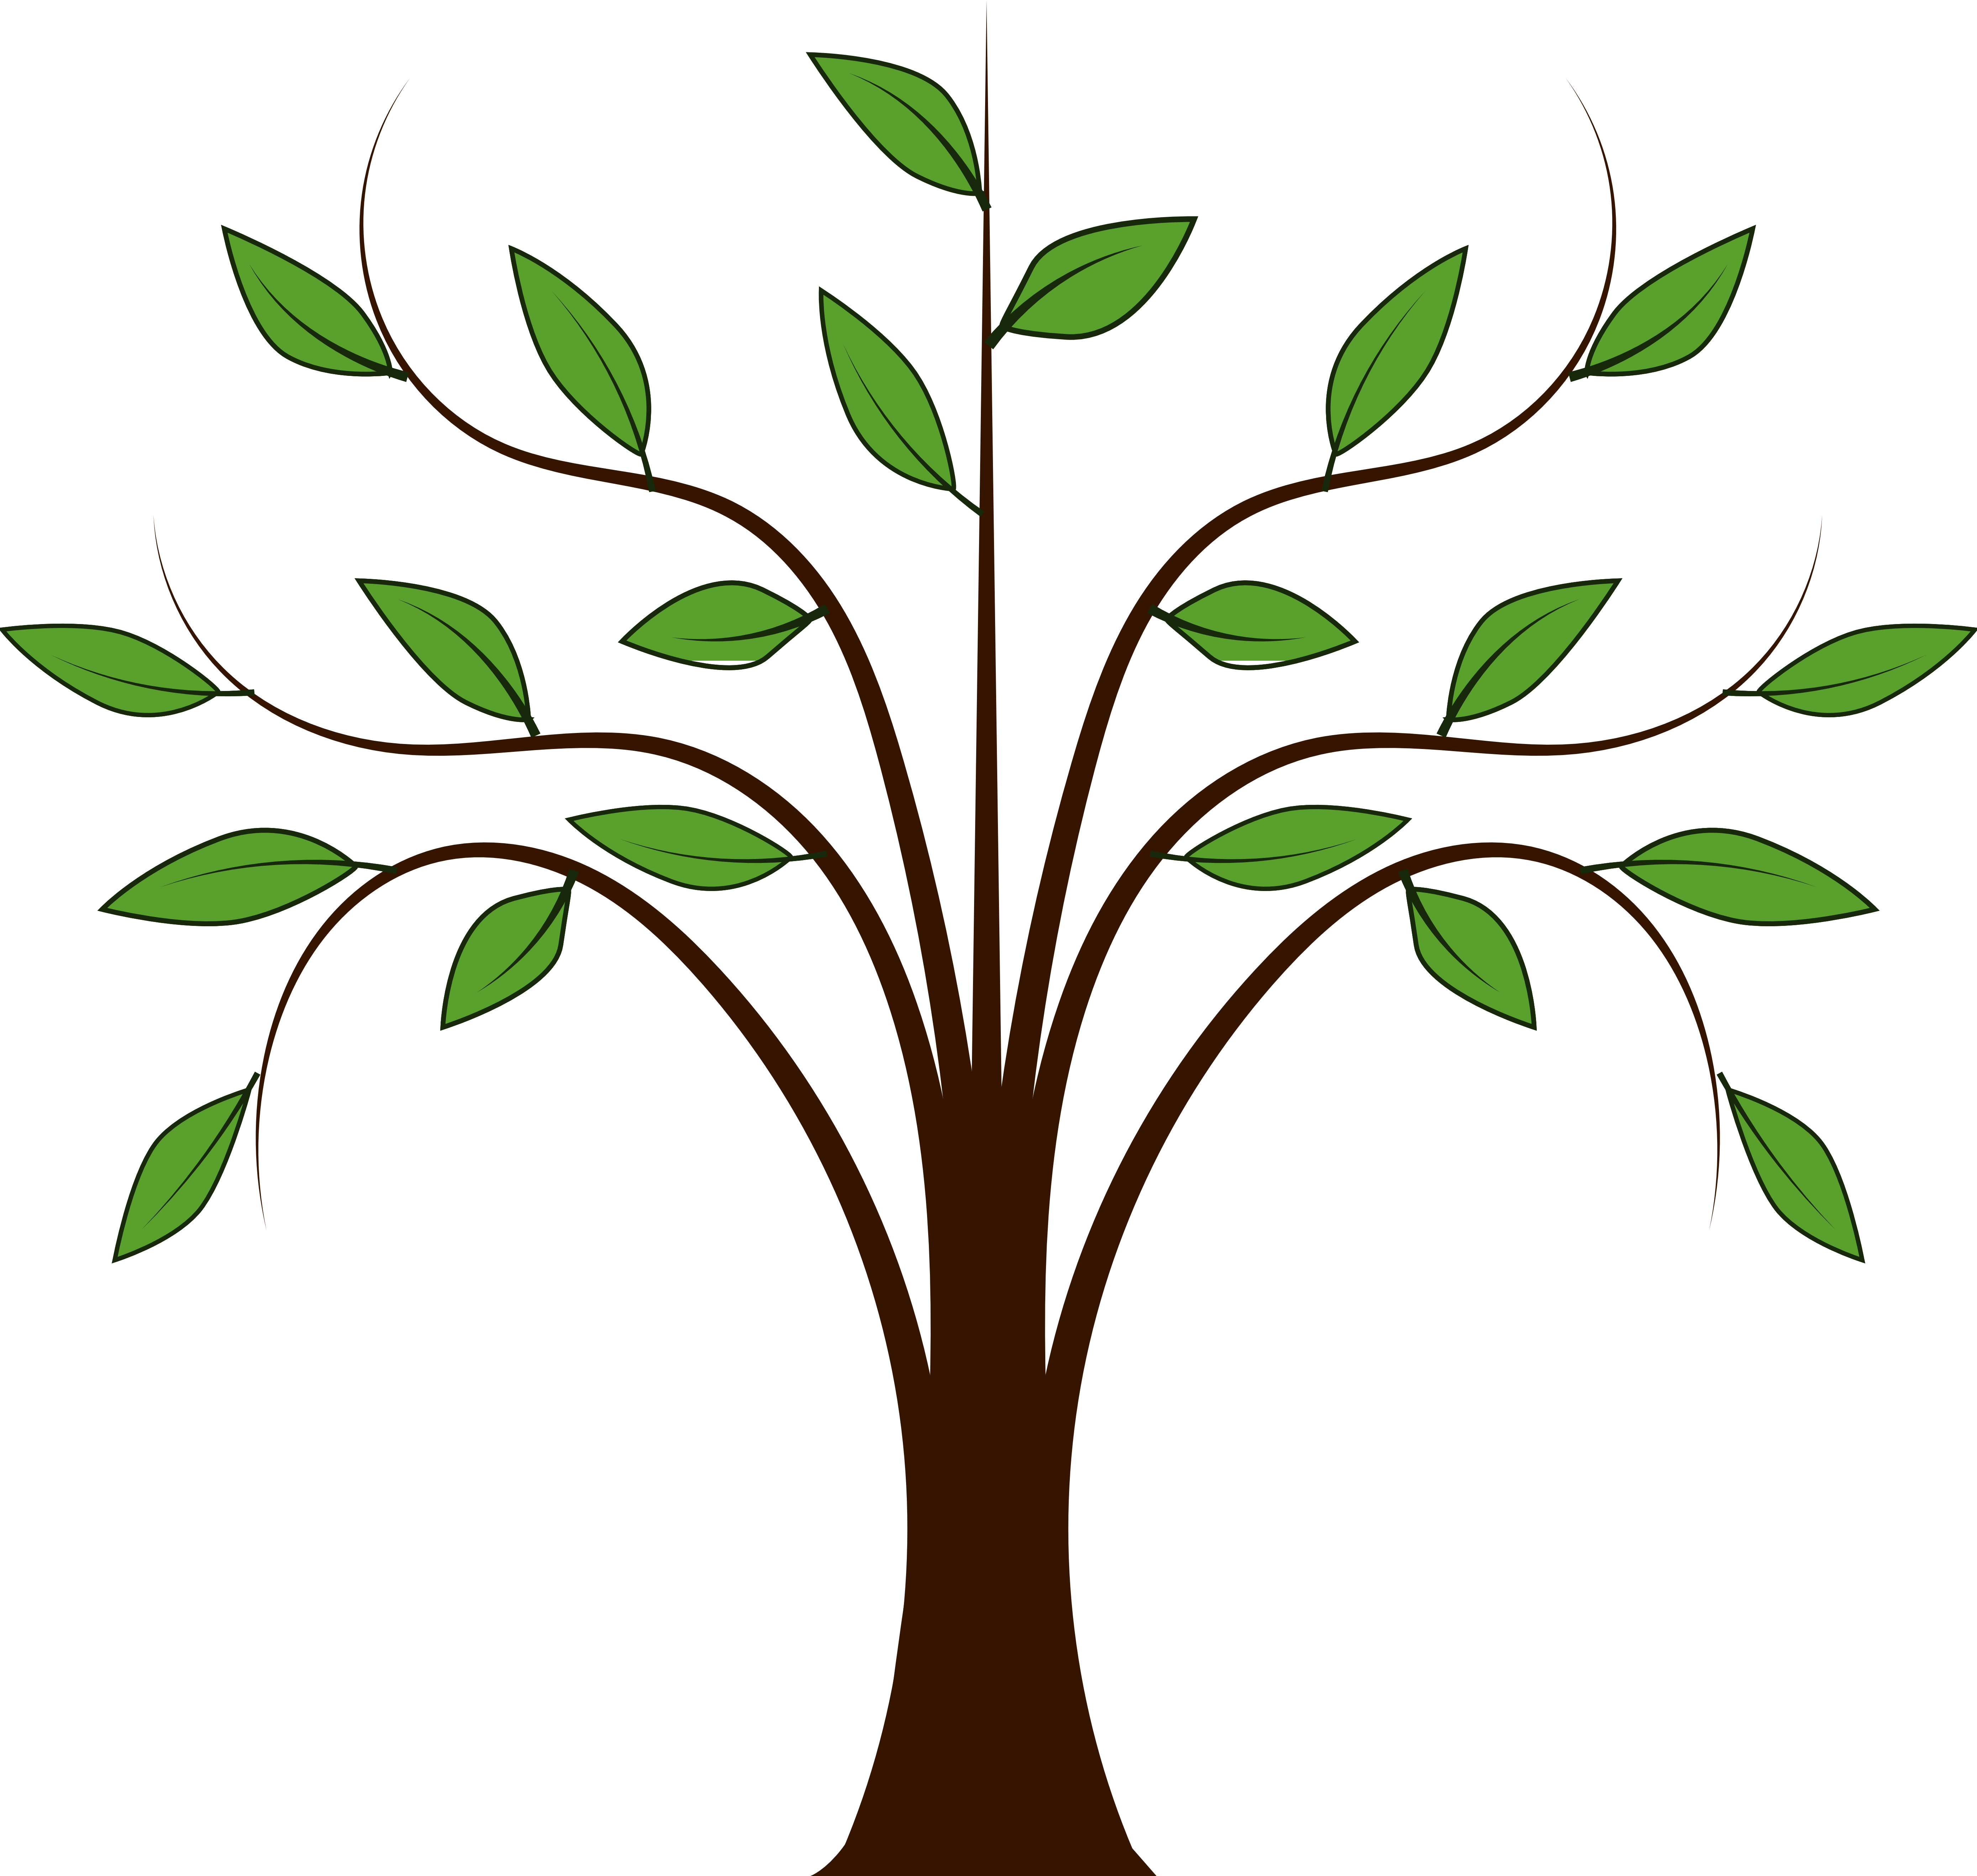 Clip Art Trees Free | Clipart library - Free Clipart Images - Tree Clipart PNG